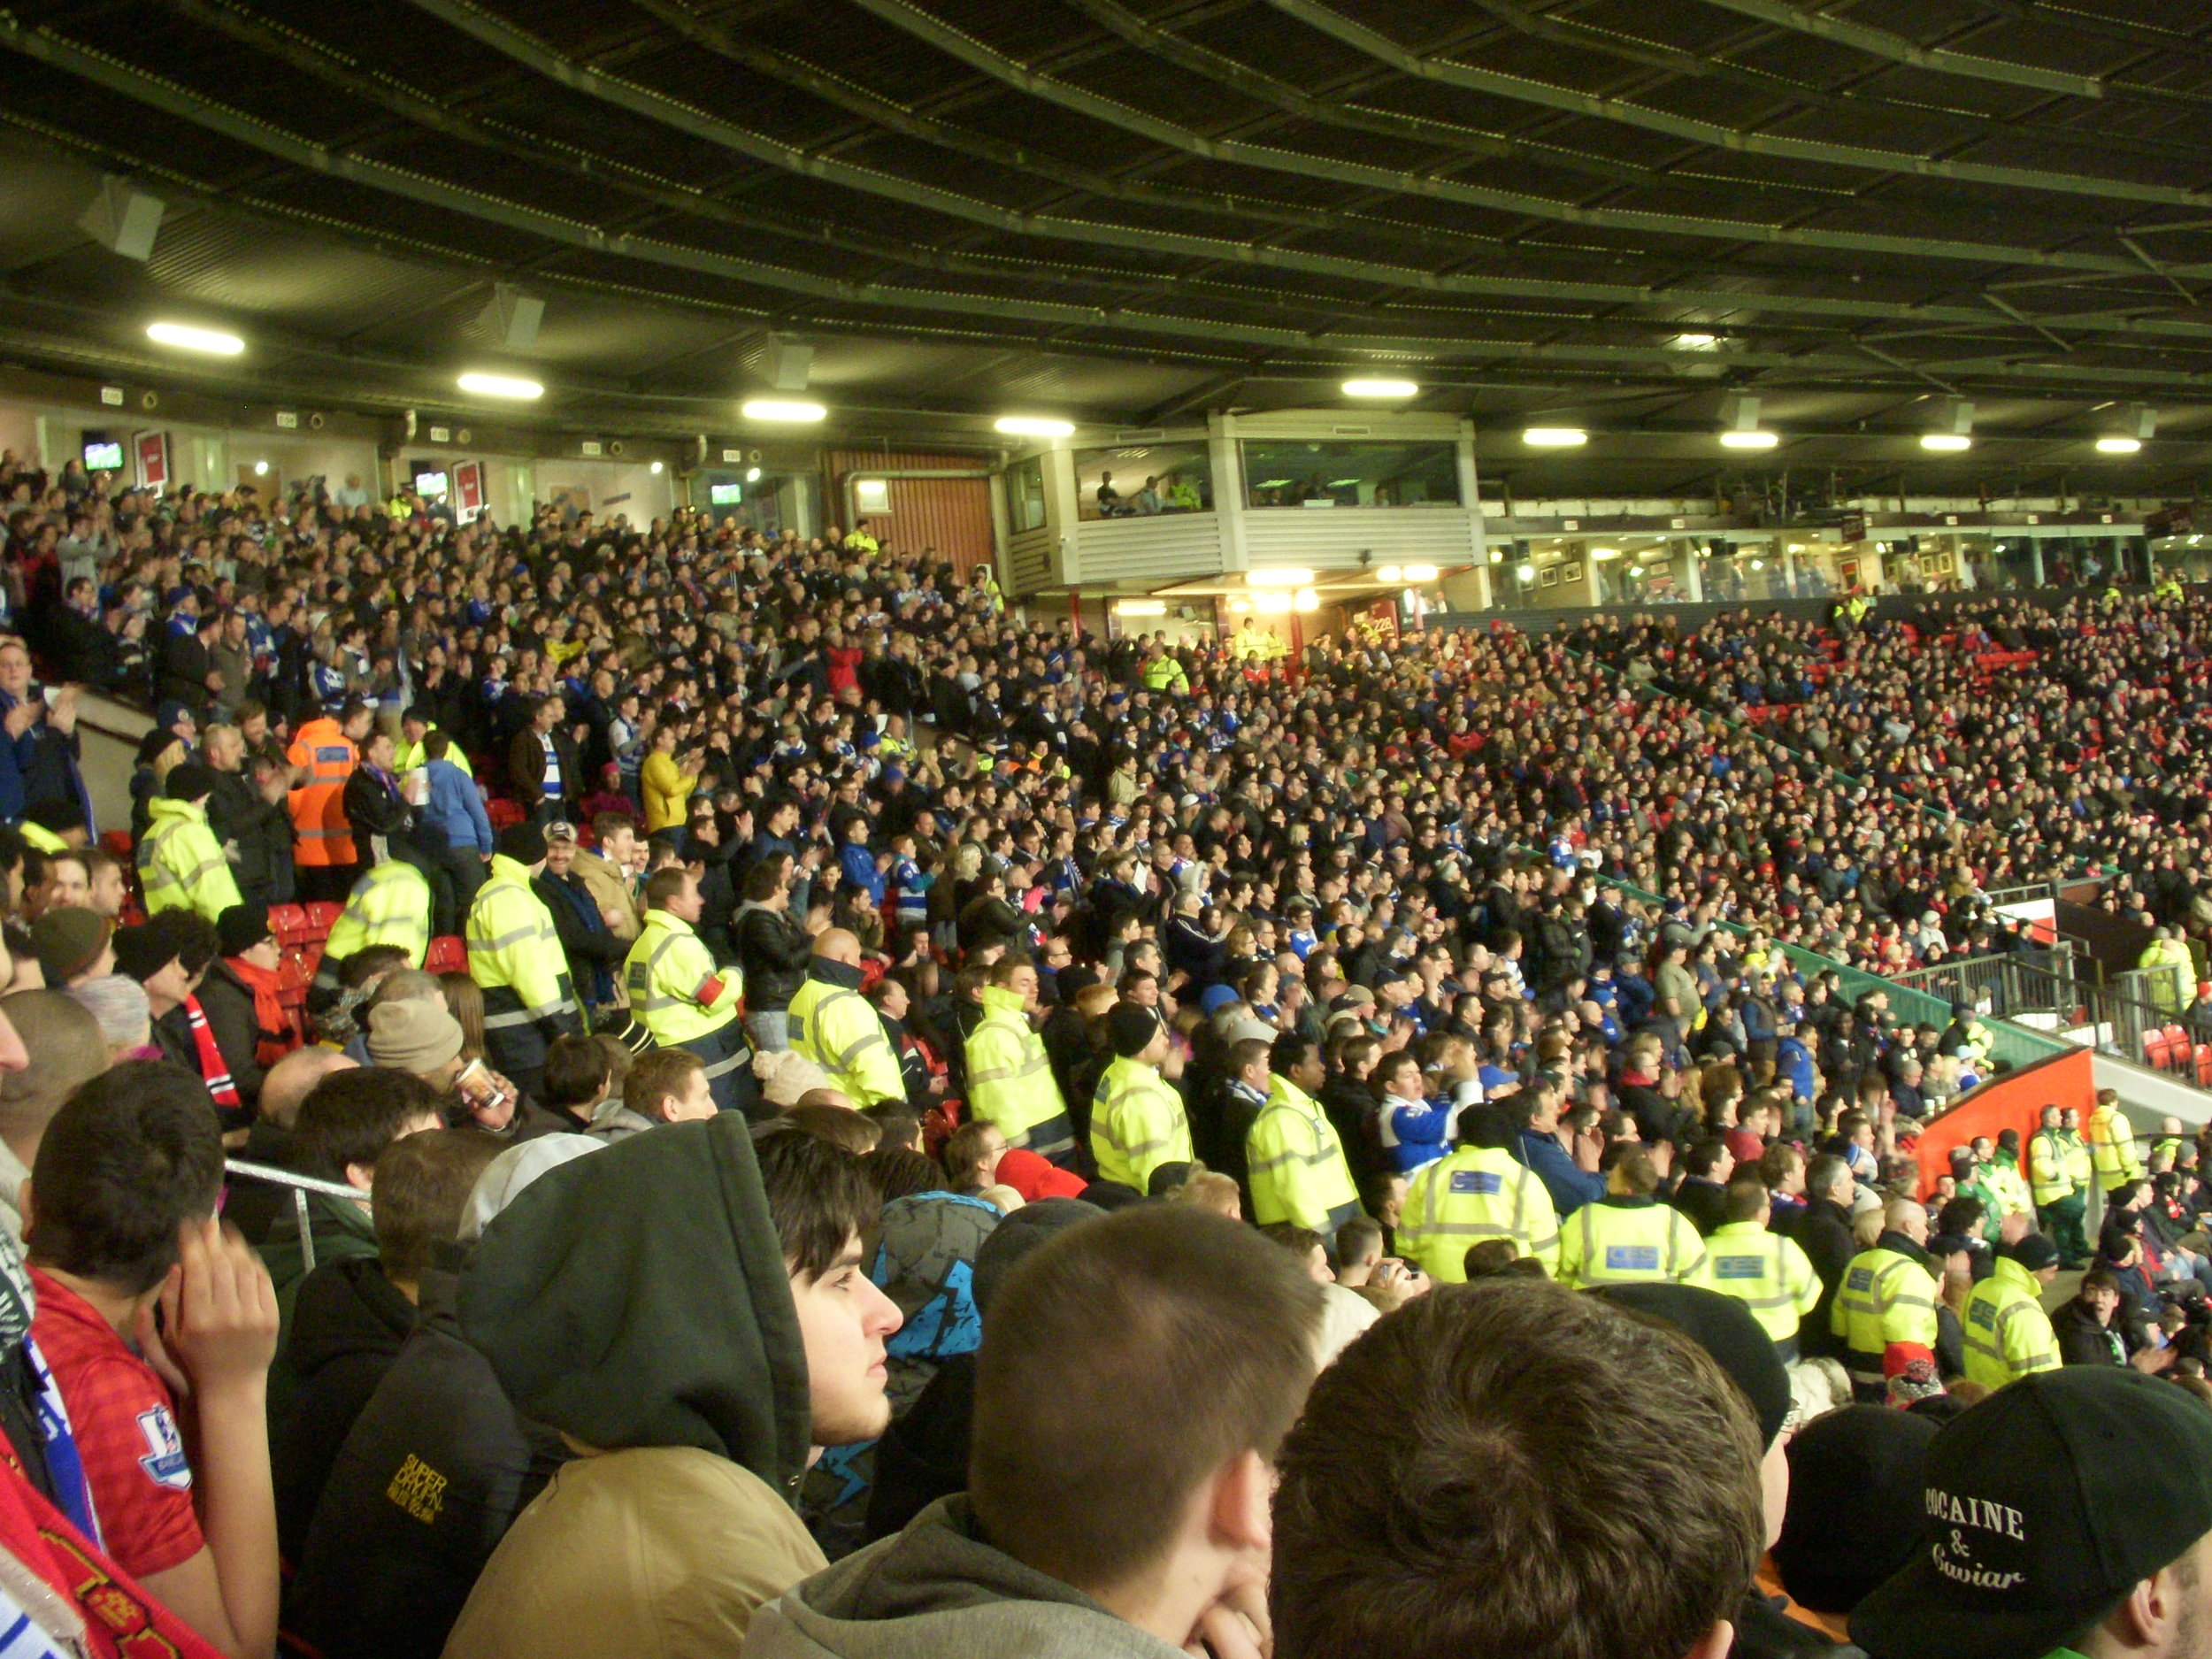 The Reading support at Old Trafford